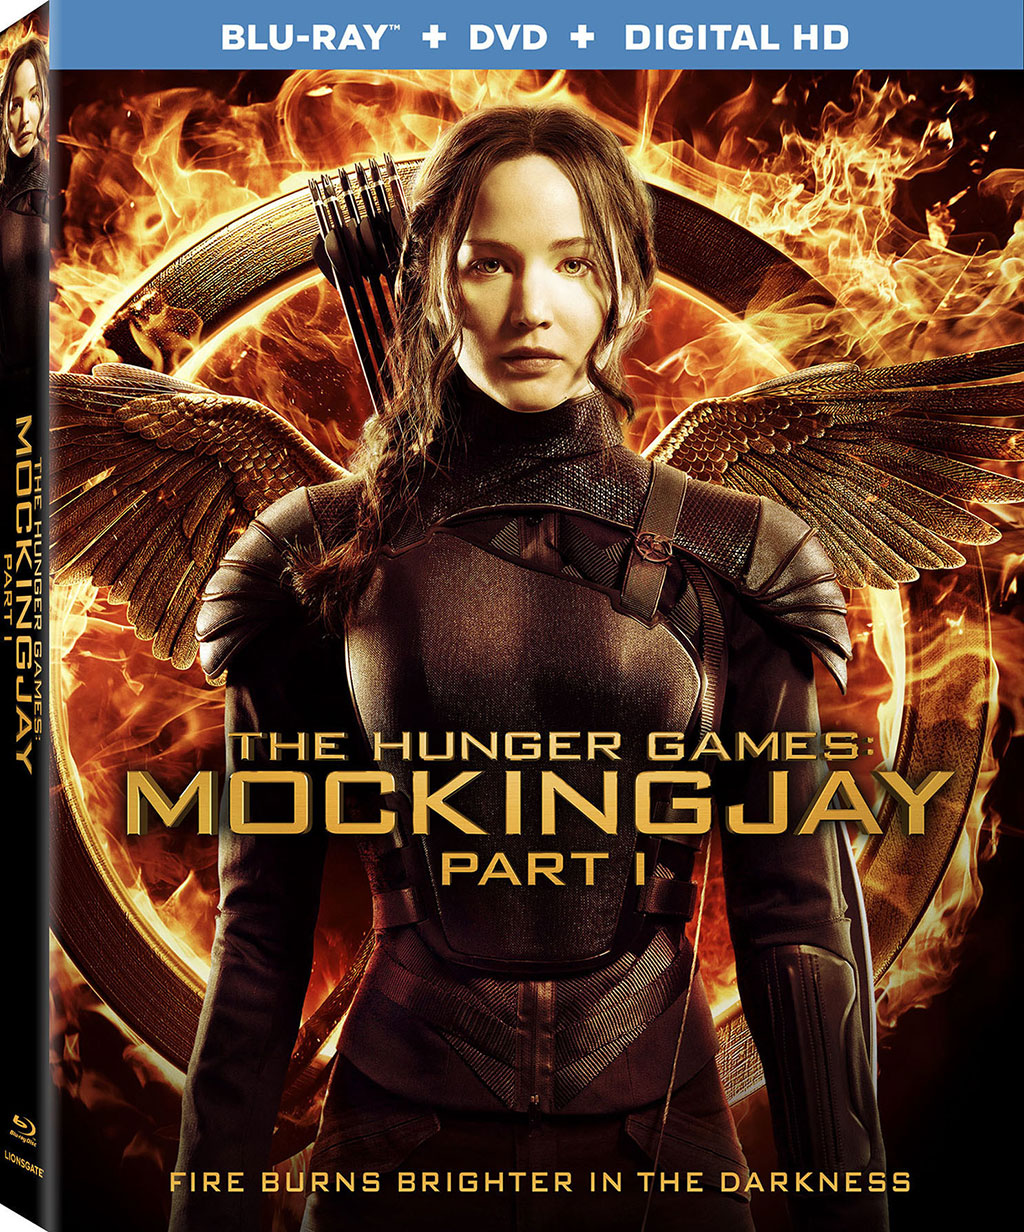 The-Hunger-Games-Mockingjay---Part-1-Blu-ray-Disc-1024px